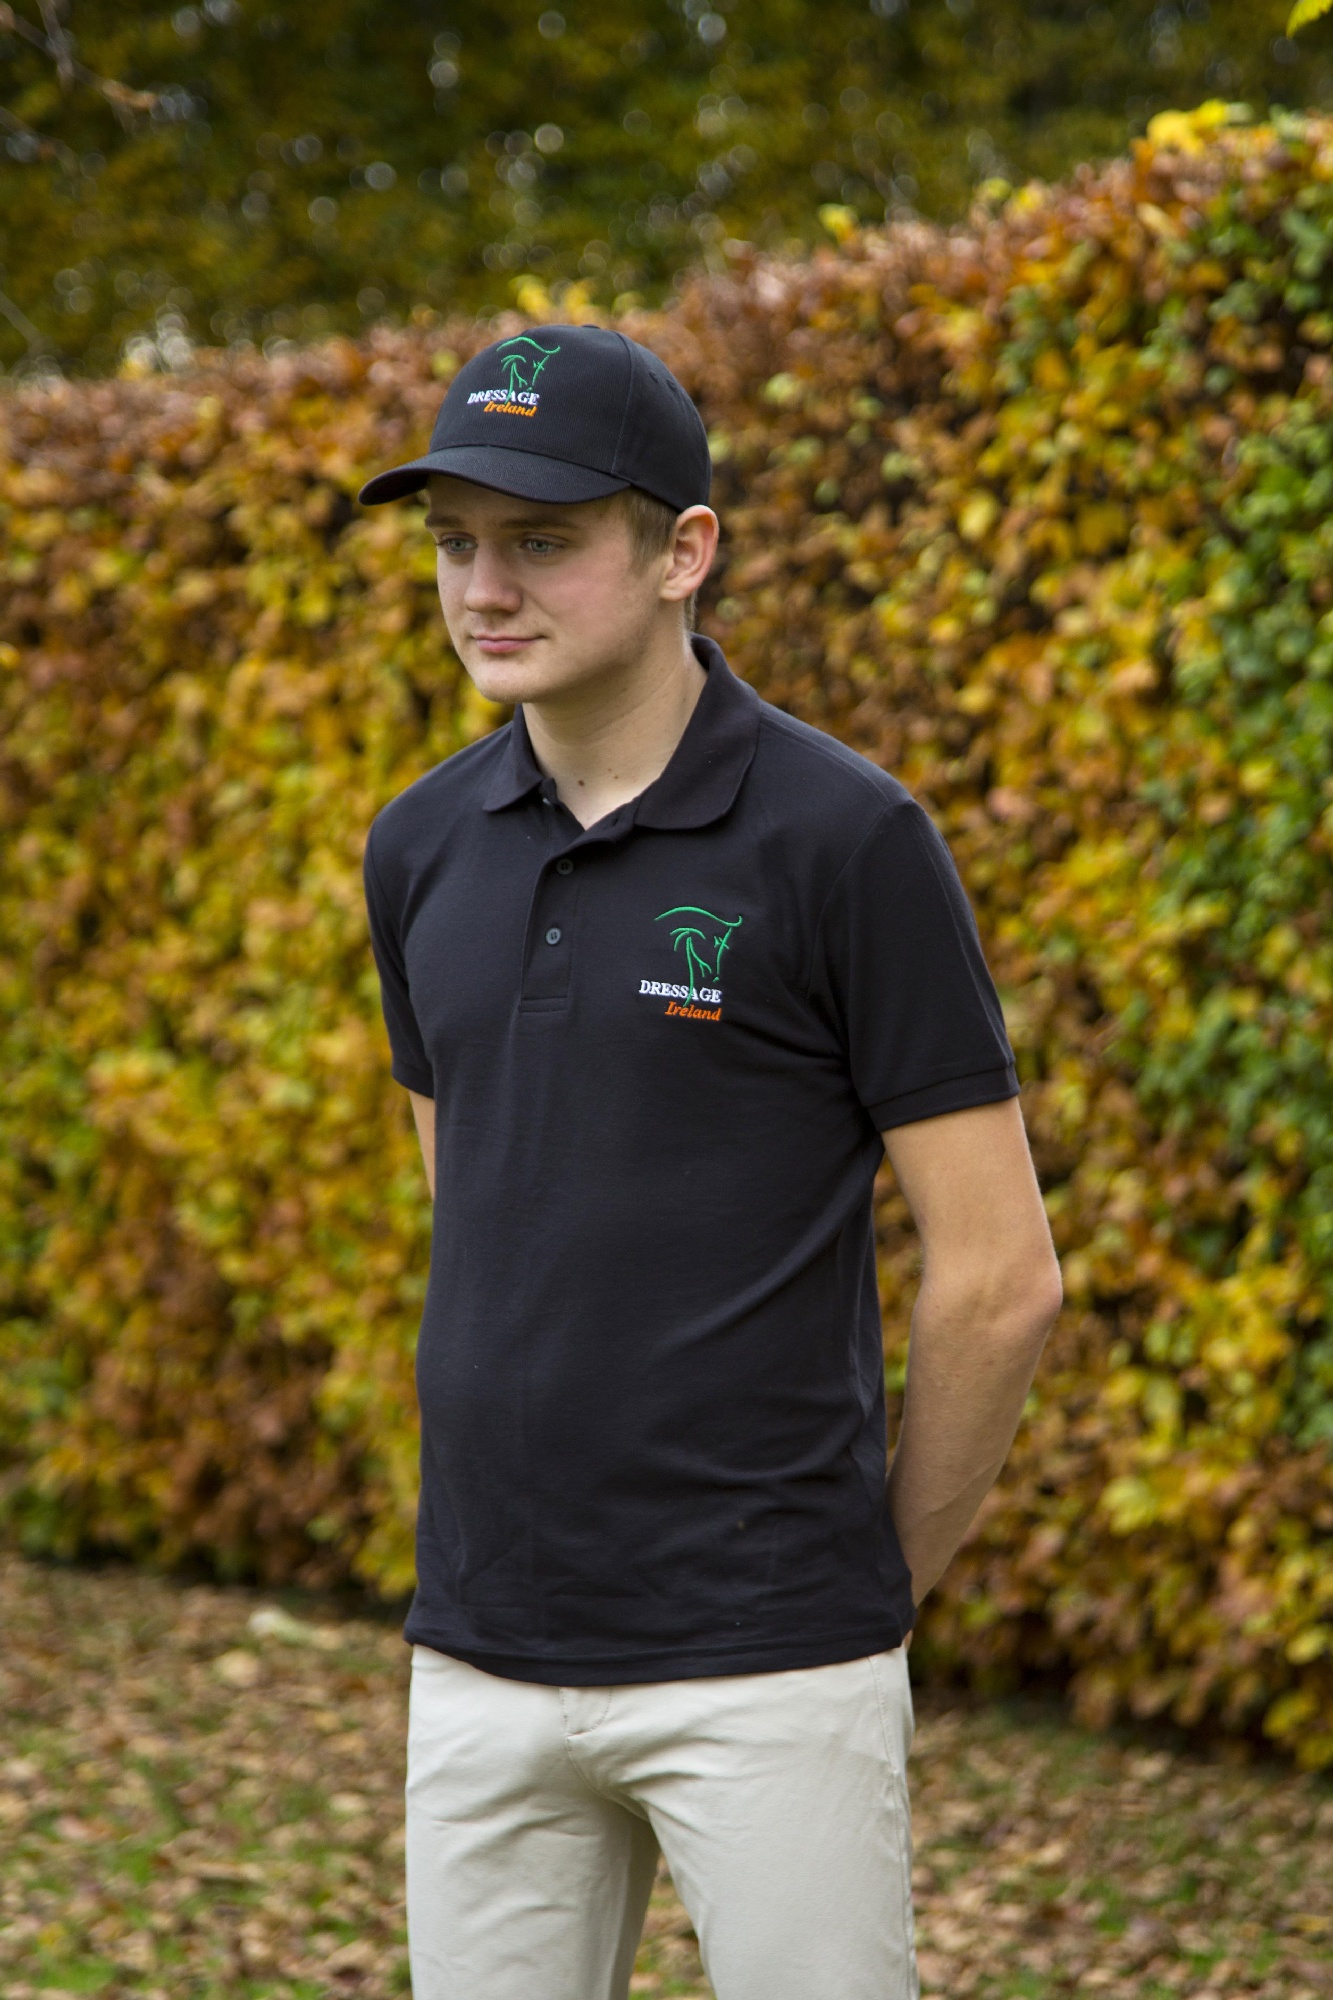 Men's Dressage Ireland Black Polo Shirt